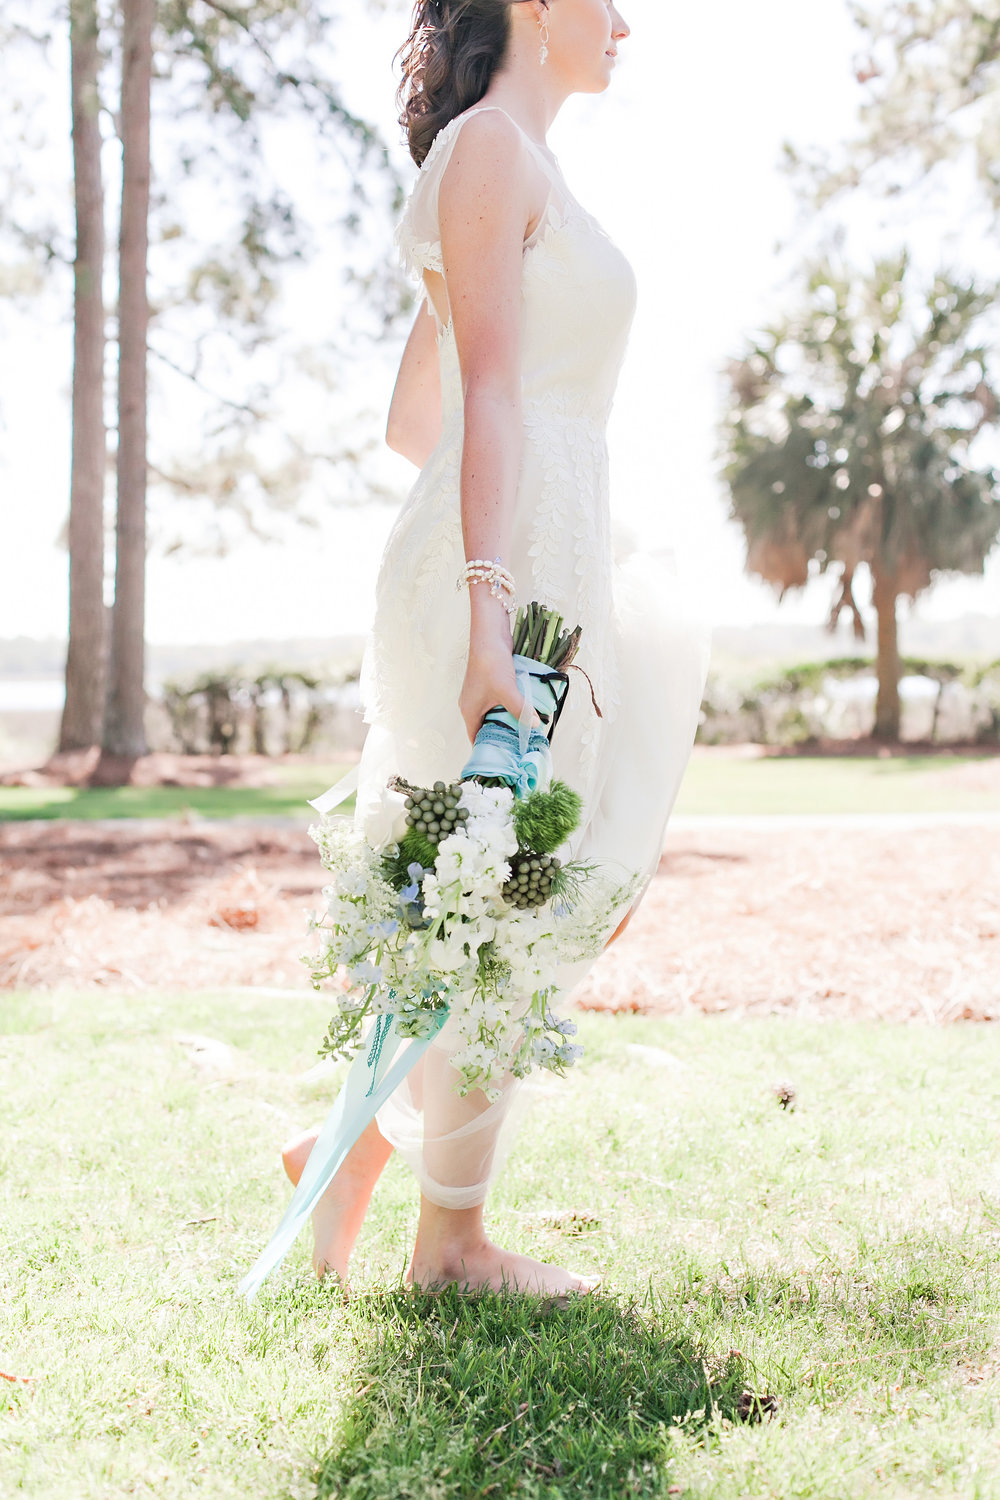 heather-kline-photography-oldfield-river-club-wedding-savannah-wedding-photographer-ti-adora-ivory-and-beau-bridal-boutique-savannah-wedding-dresses-savannah-bridal-boutique-savannah-bridal-gowns-bridal-accessories-savannah-wedding-planner-8.jpg